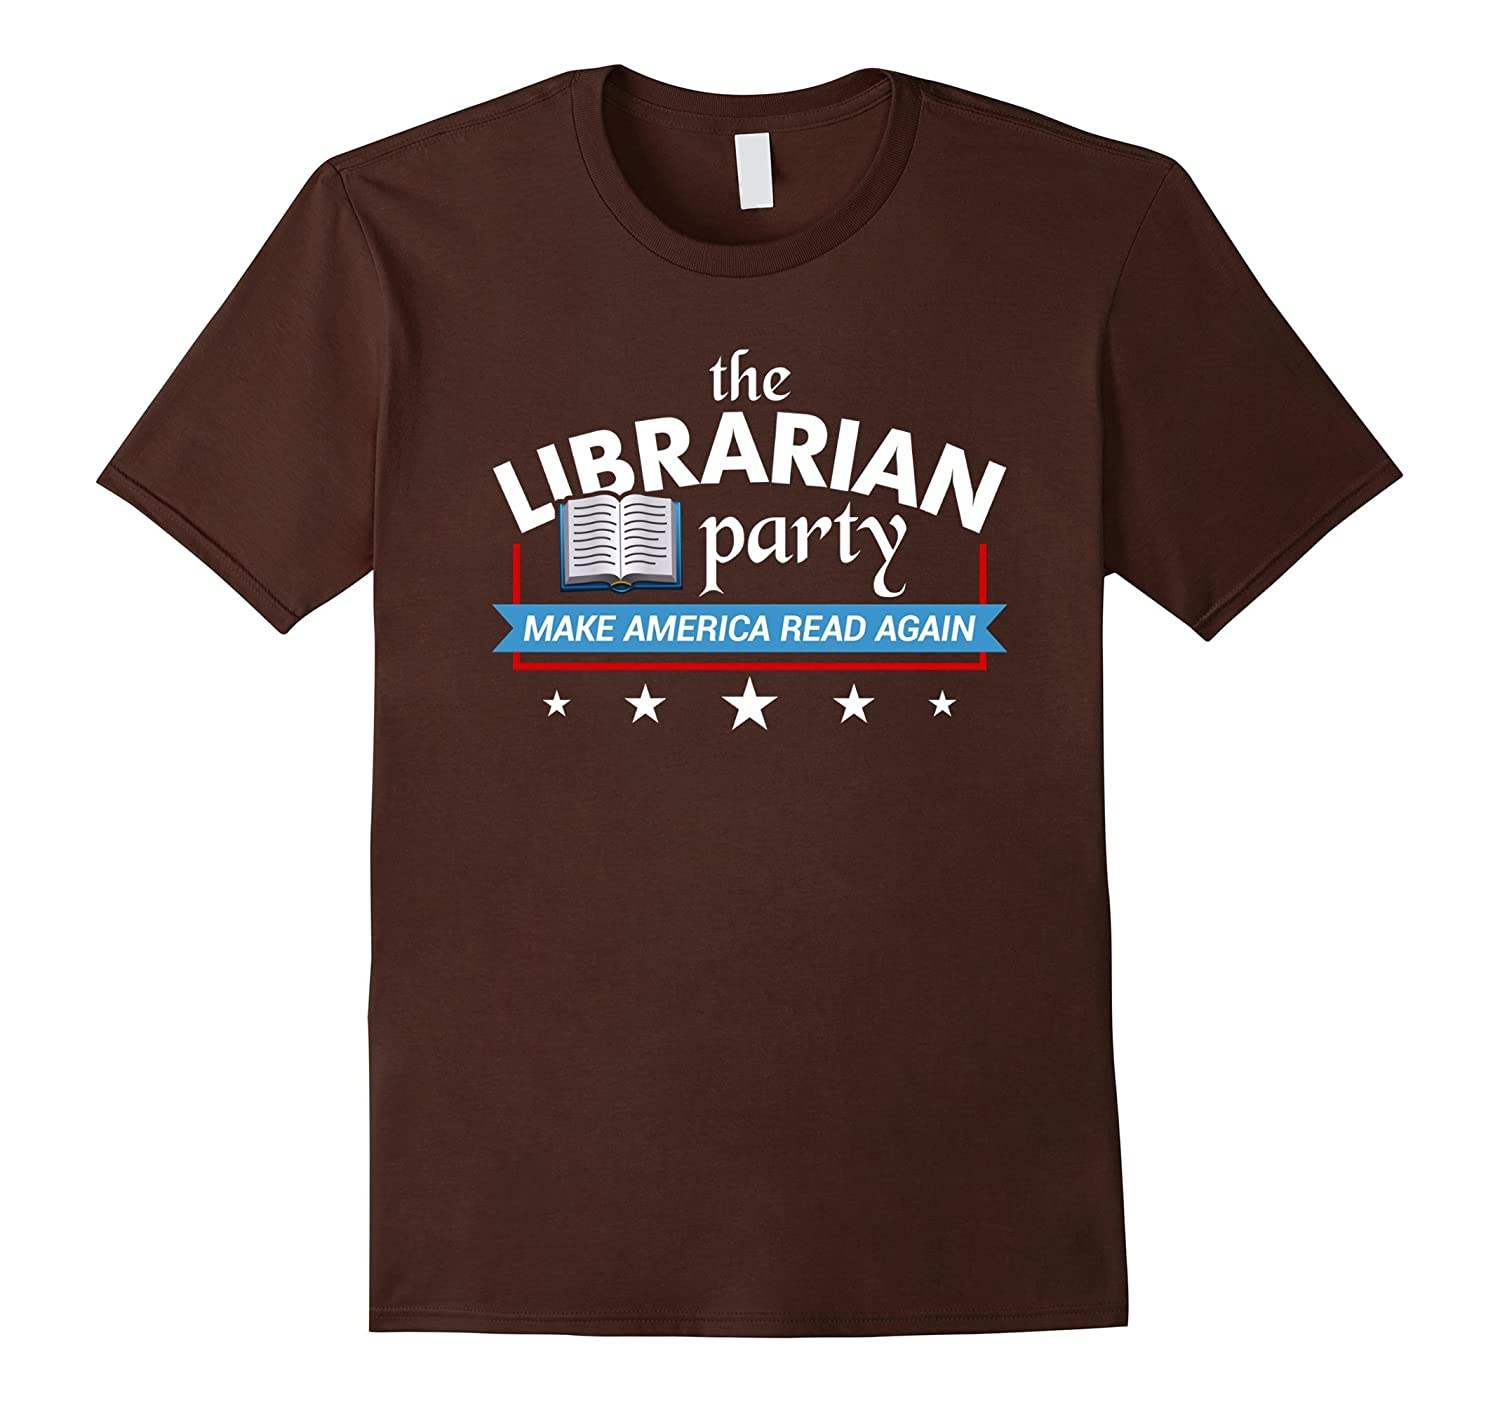 The Librarian Party Make America Read Again T-Shirt